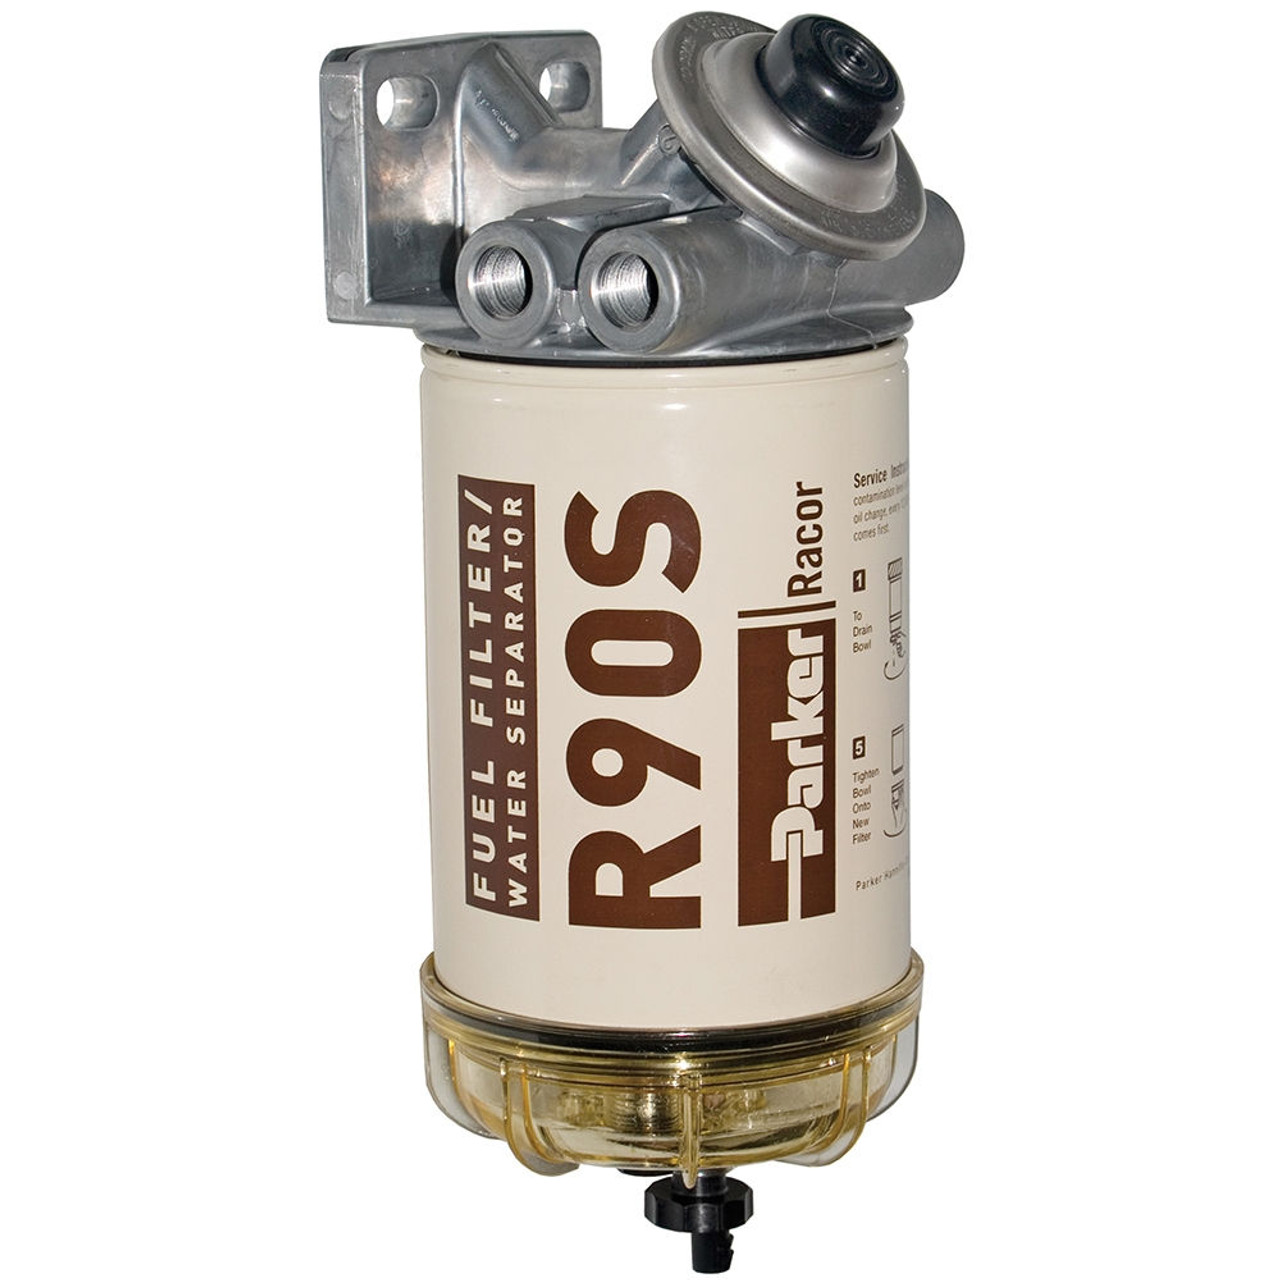 racor 400 series 90 gph diesel spin on fuel filter 2 micron 6 Fuel Filter Replacement racor 400 series 90 gph diesel spin on fuel filter 2 micron 6 qty john m ellsworth co inc